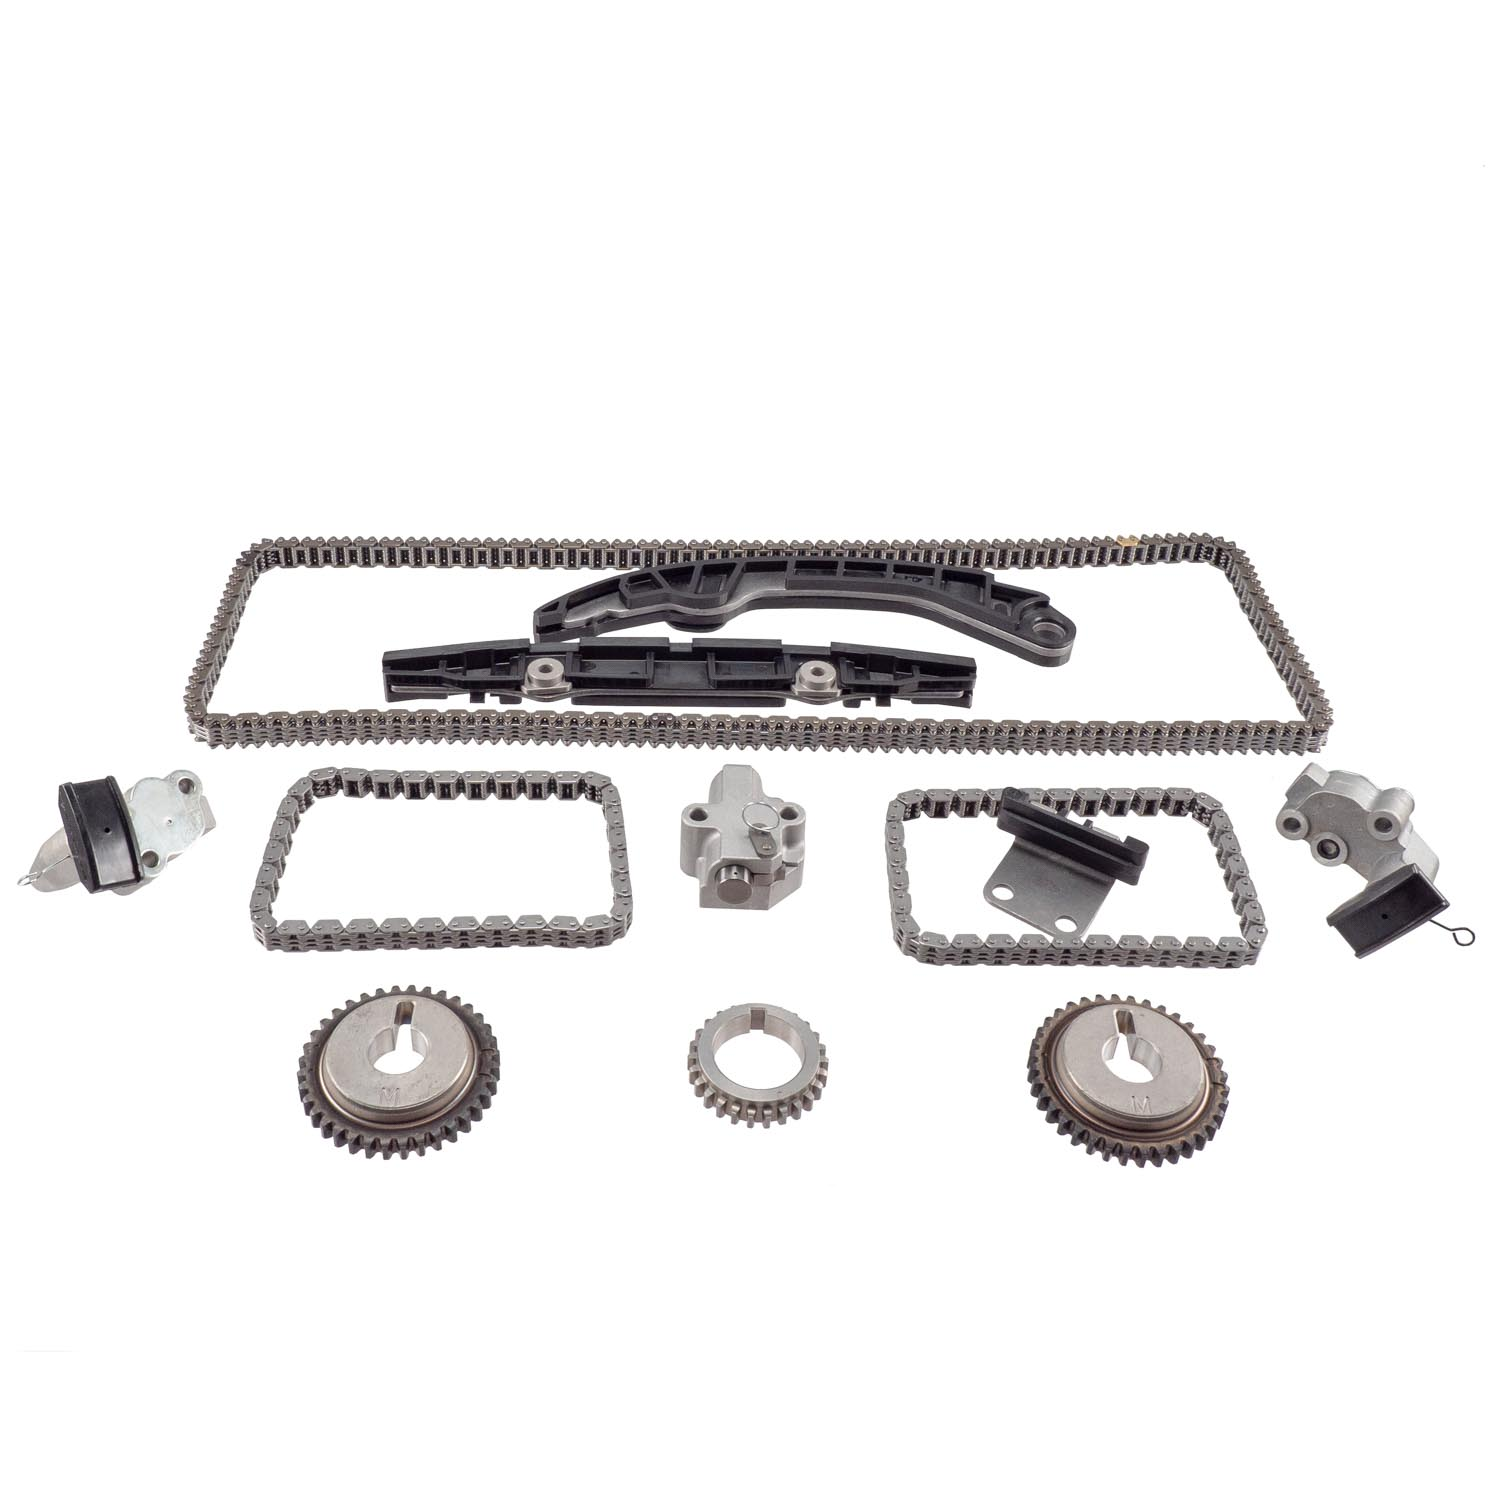 2 22 19 new timing kit  u0026 components for infinity   nissan 3